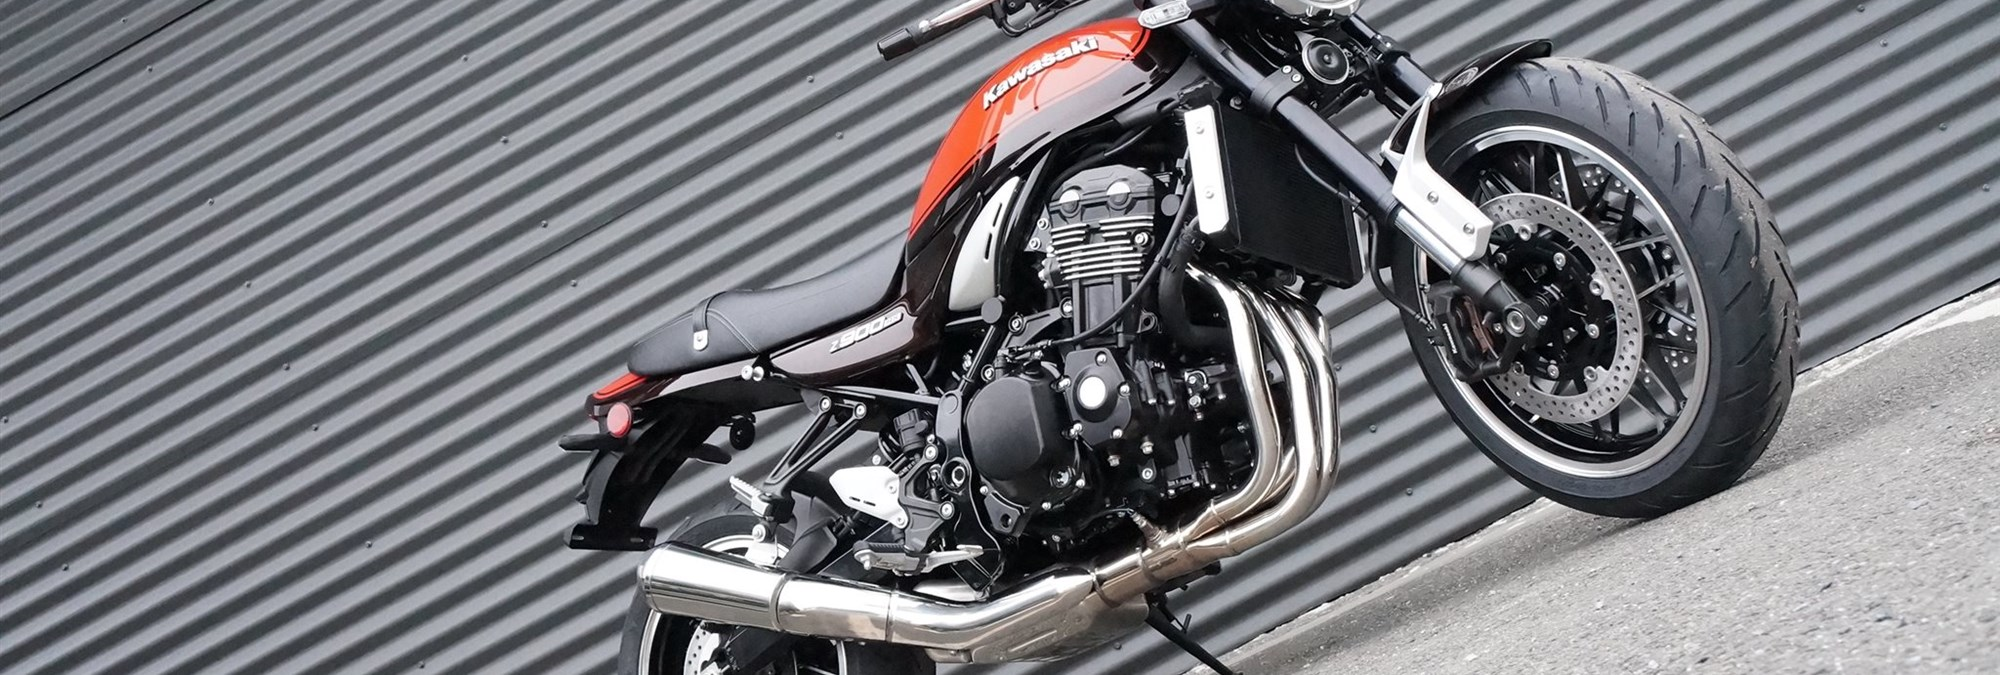 Z900 RS.